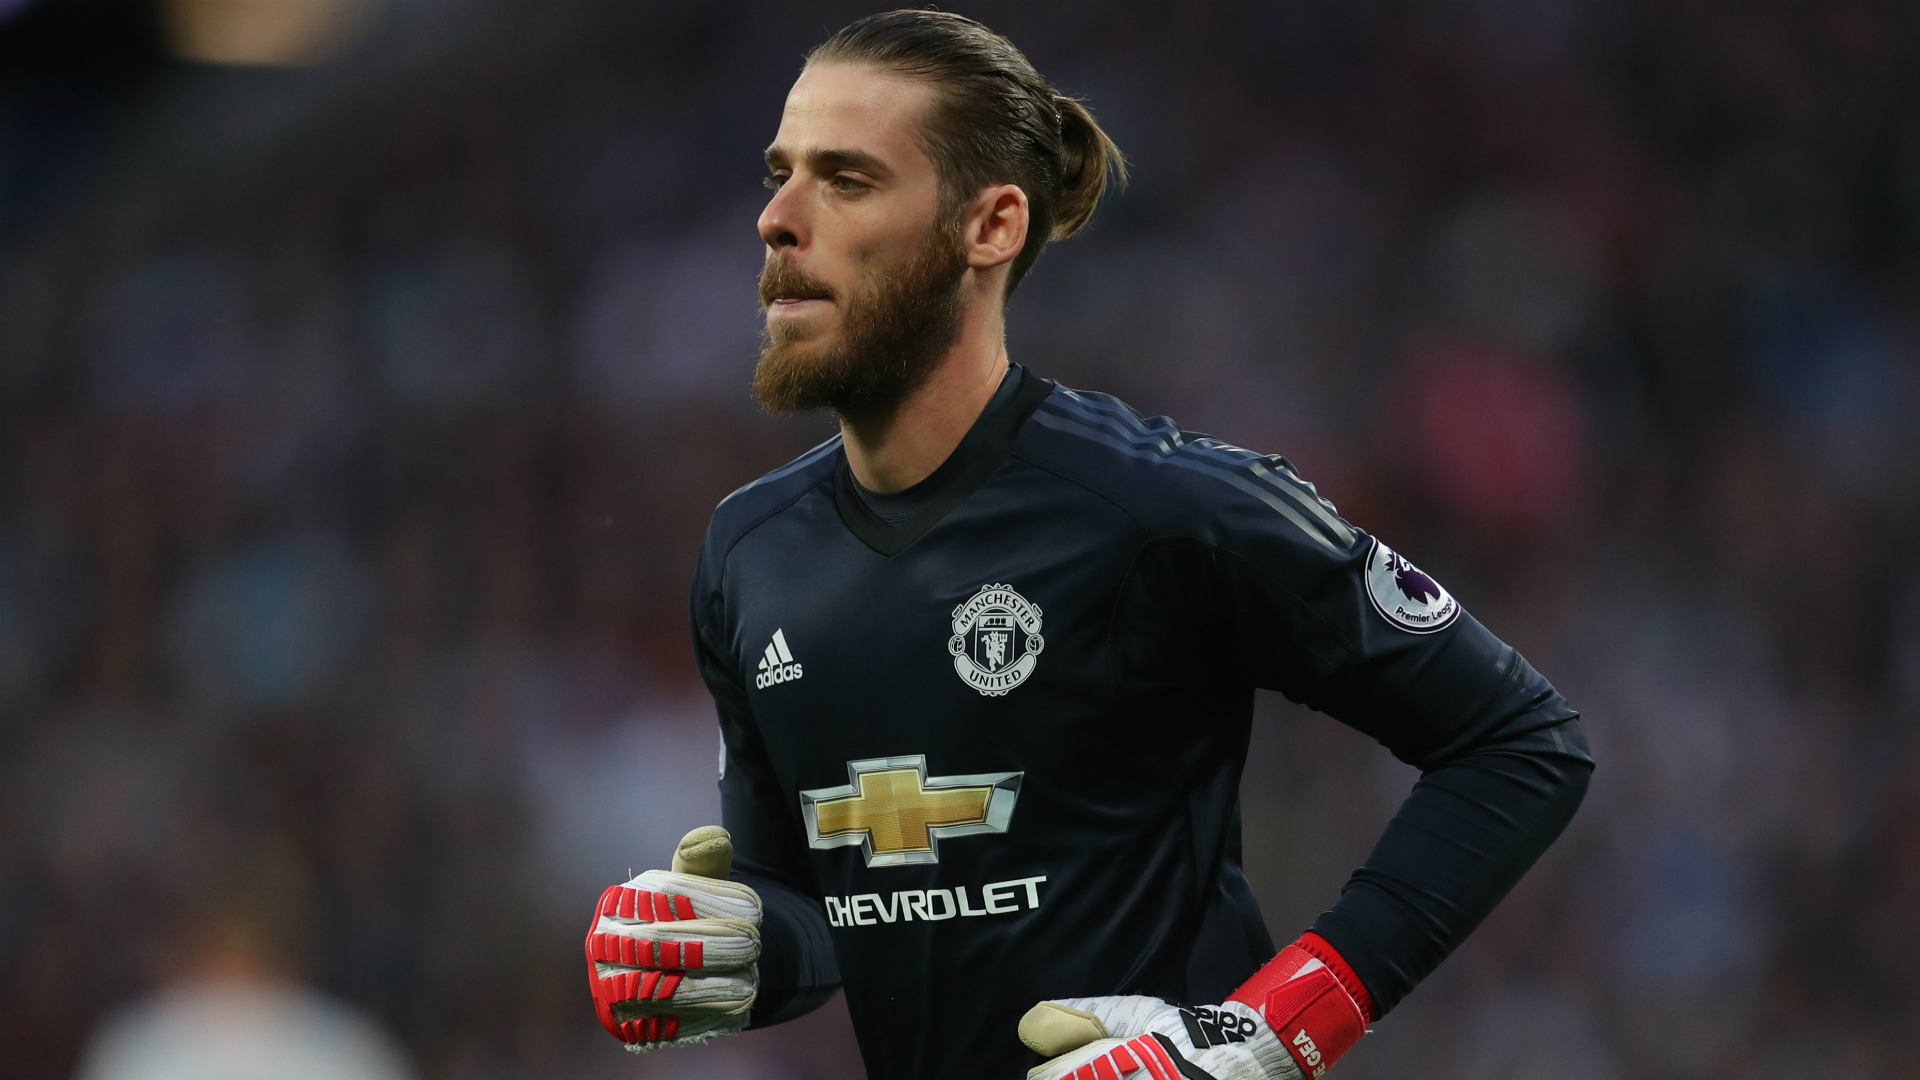 Manchester United's Goal-Keeper David De Gea Wins His First Golden Glove